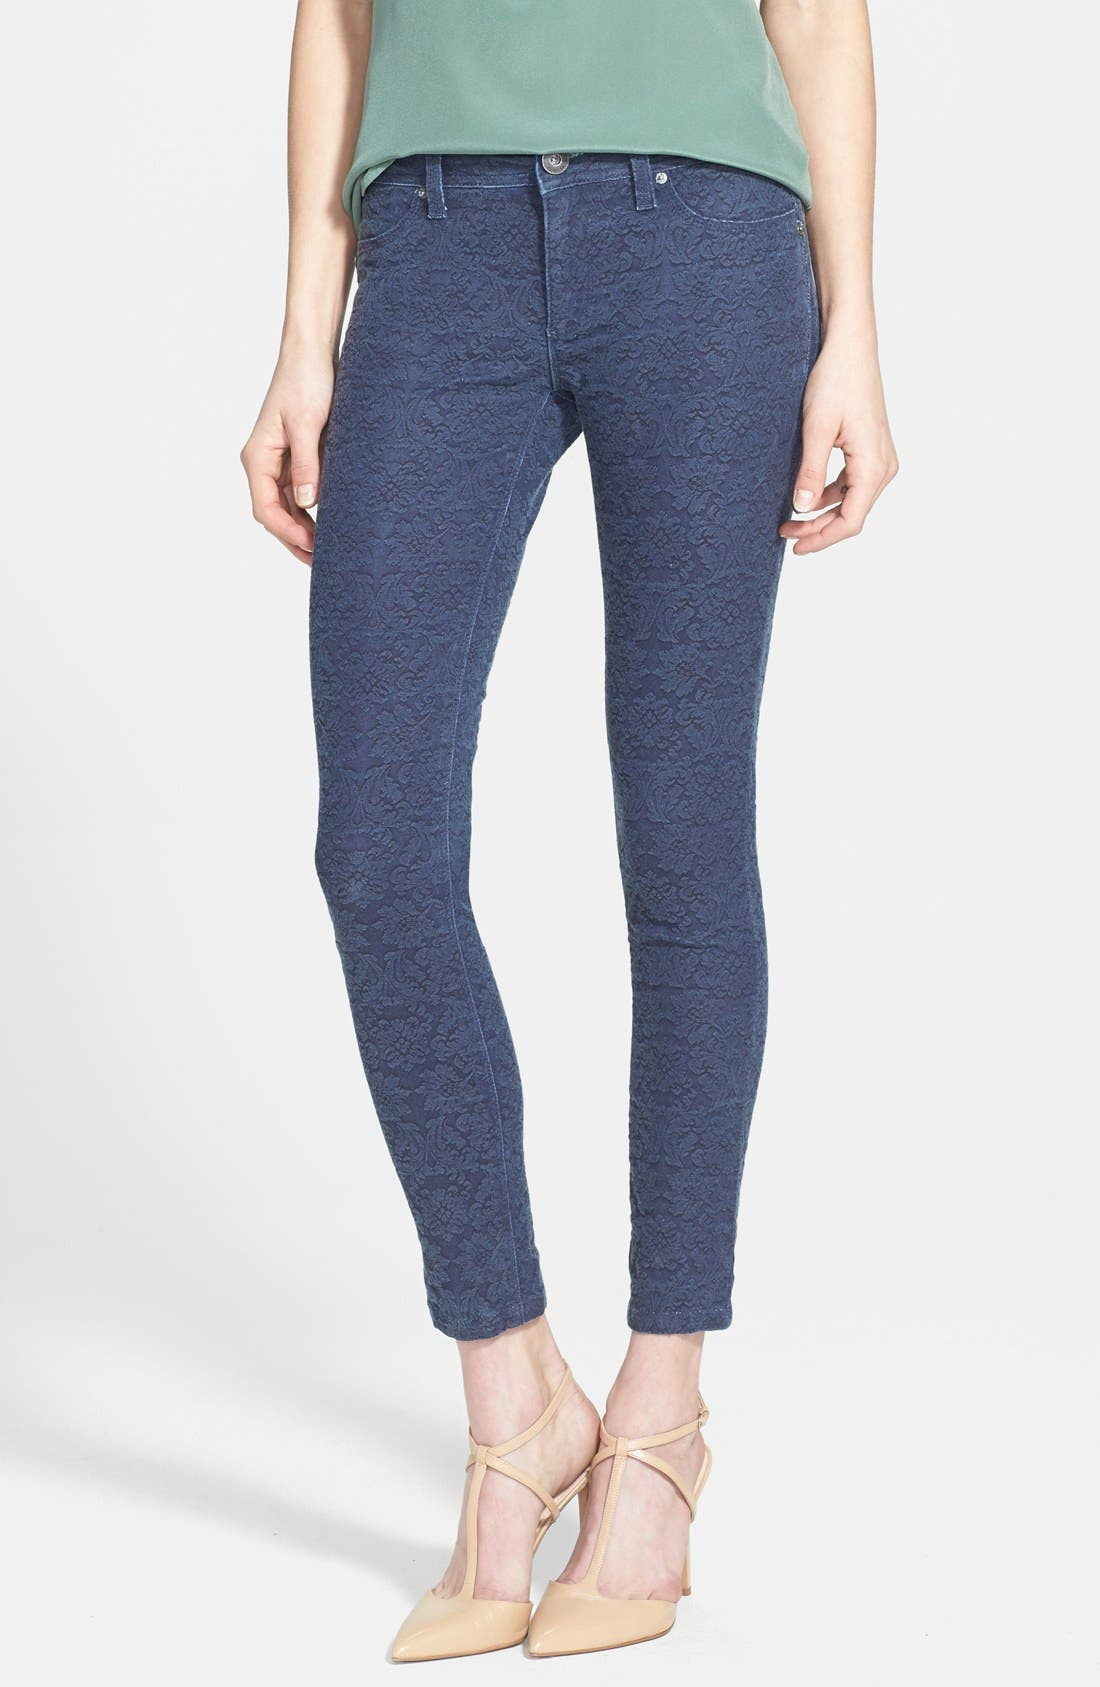 Alternate Image 1 Selected - DL1961 'Emma' Damask Print Skinny Ankle Jeans (Rockefeller)